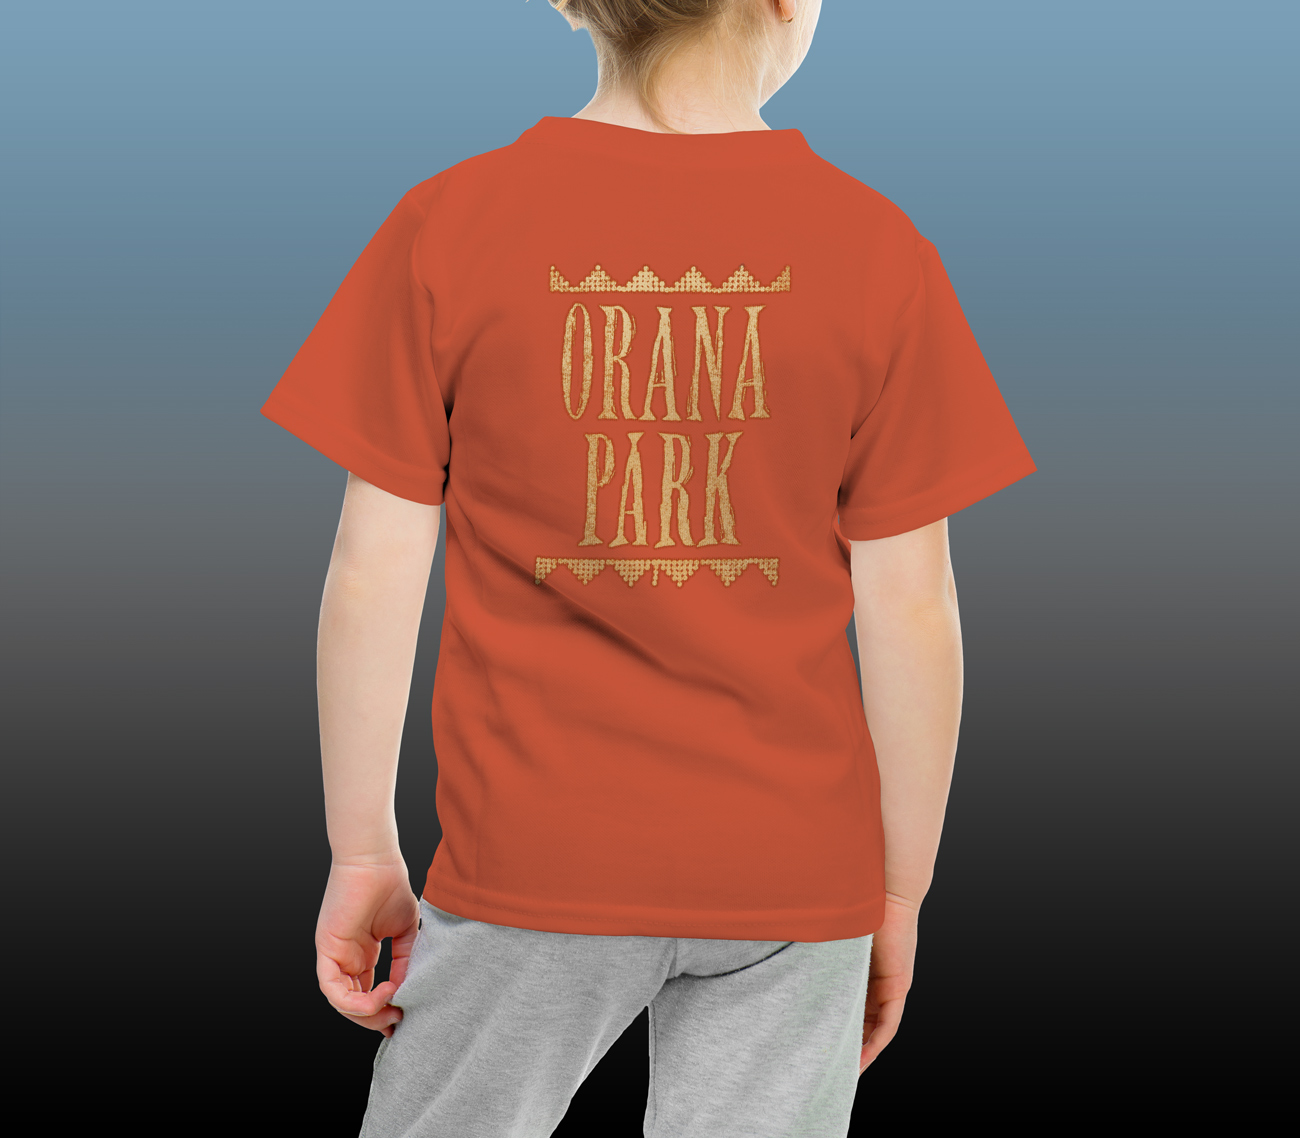 Orana Park kids' Cheetah screen print on the back of a burnt orange T-shirt